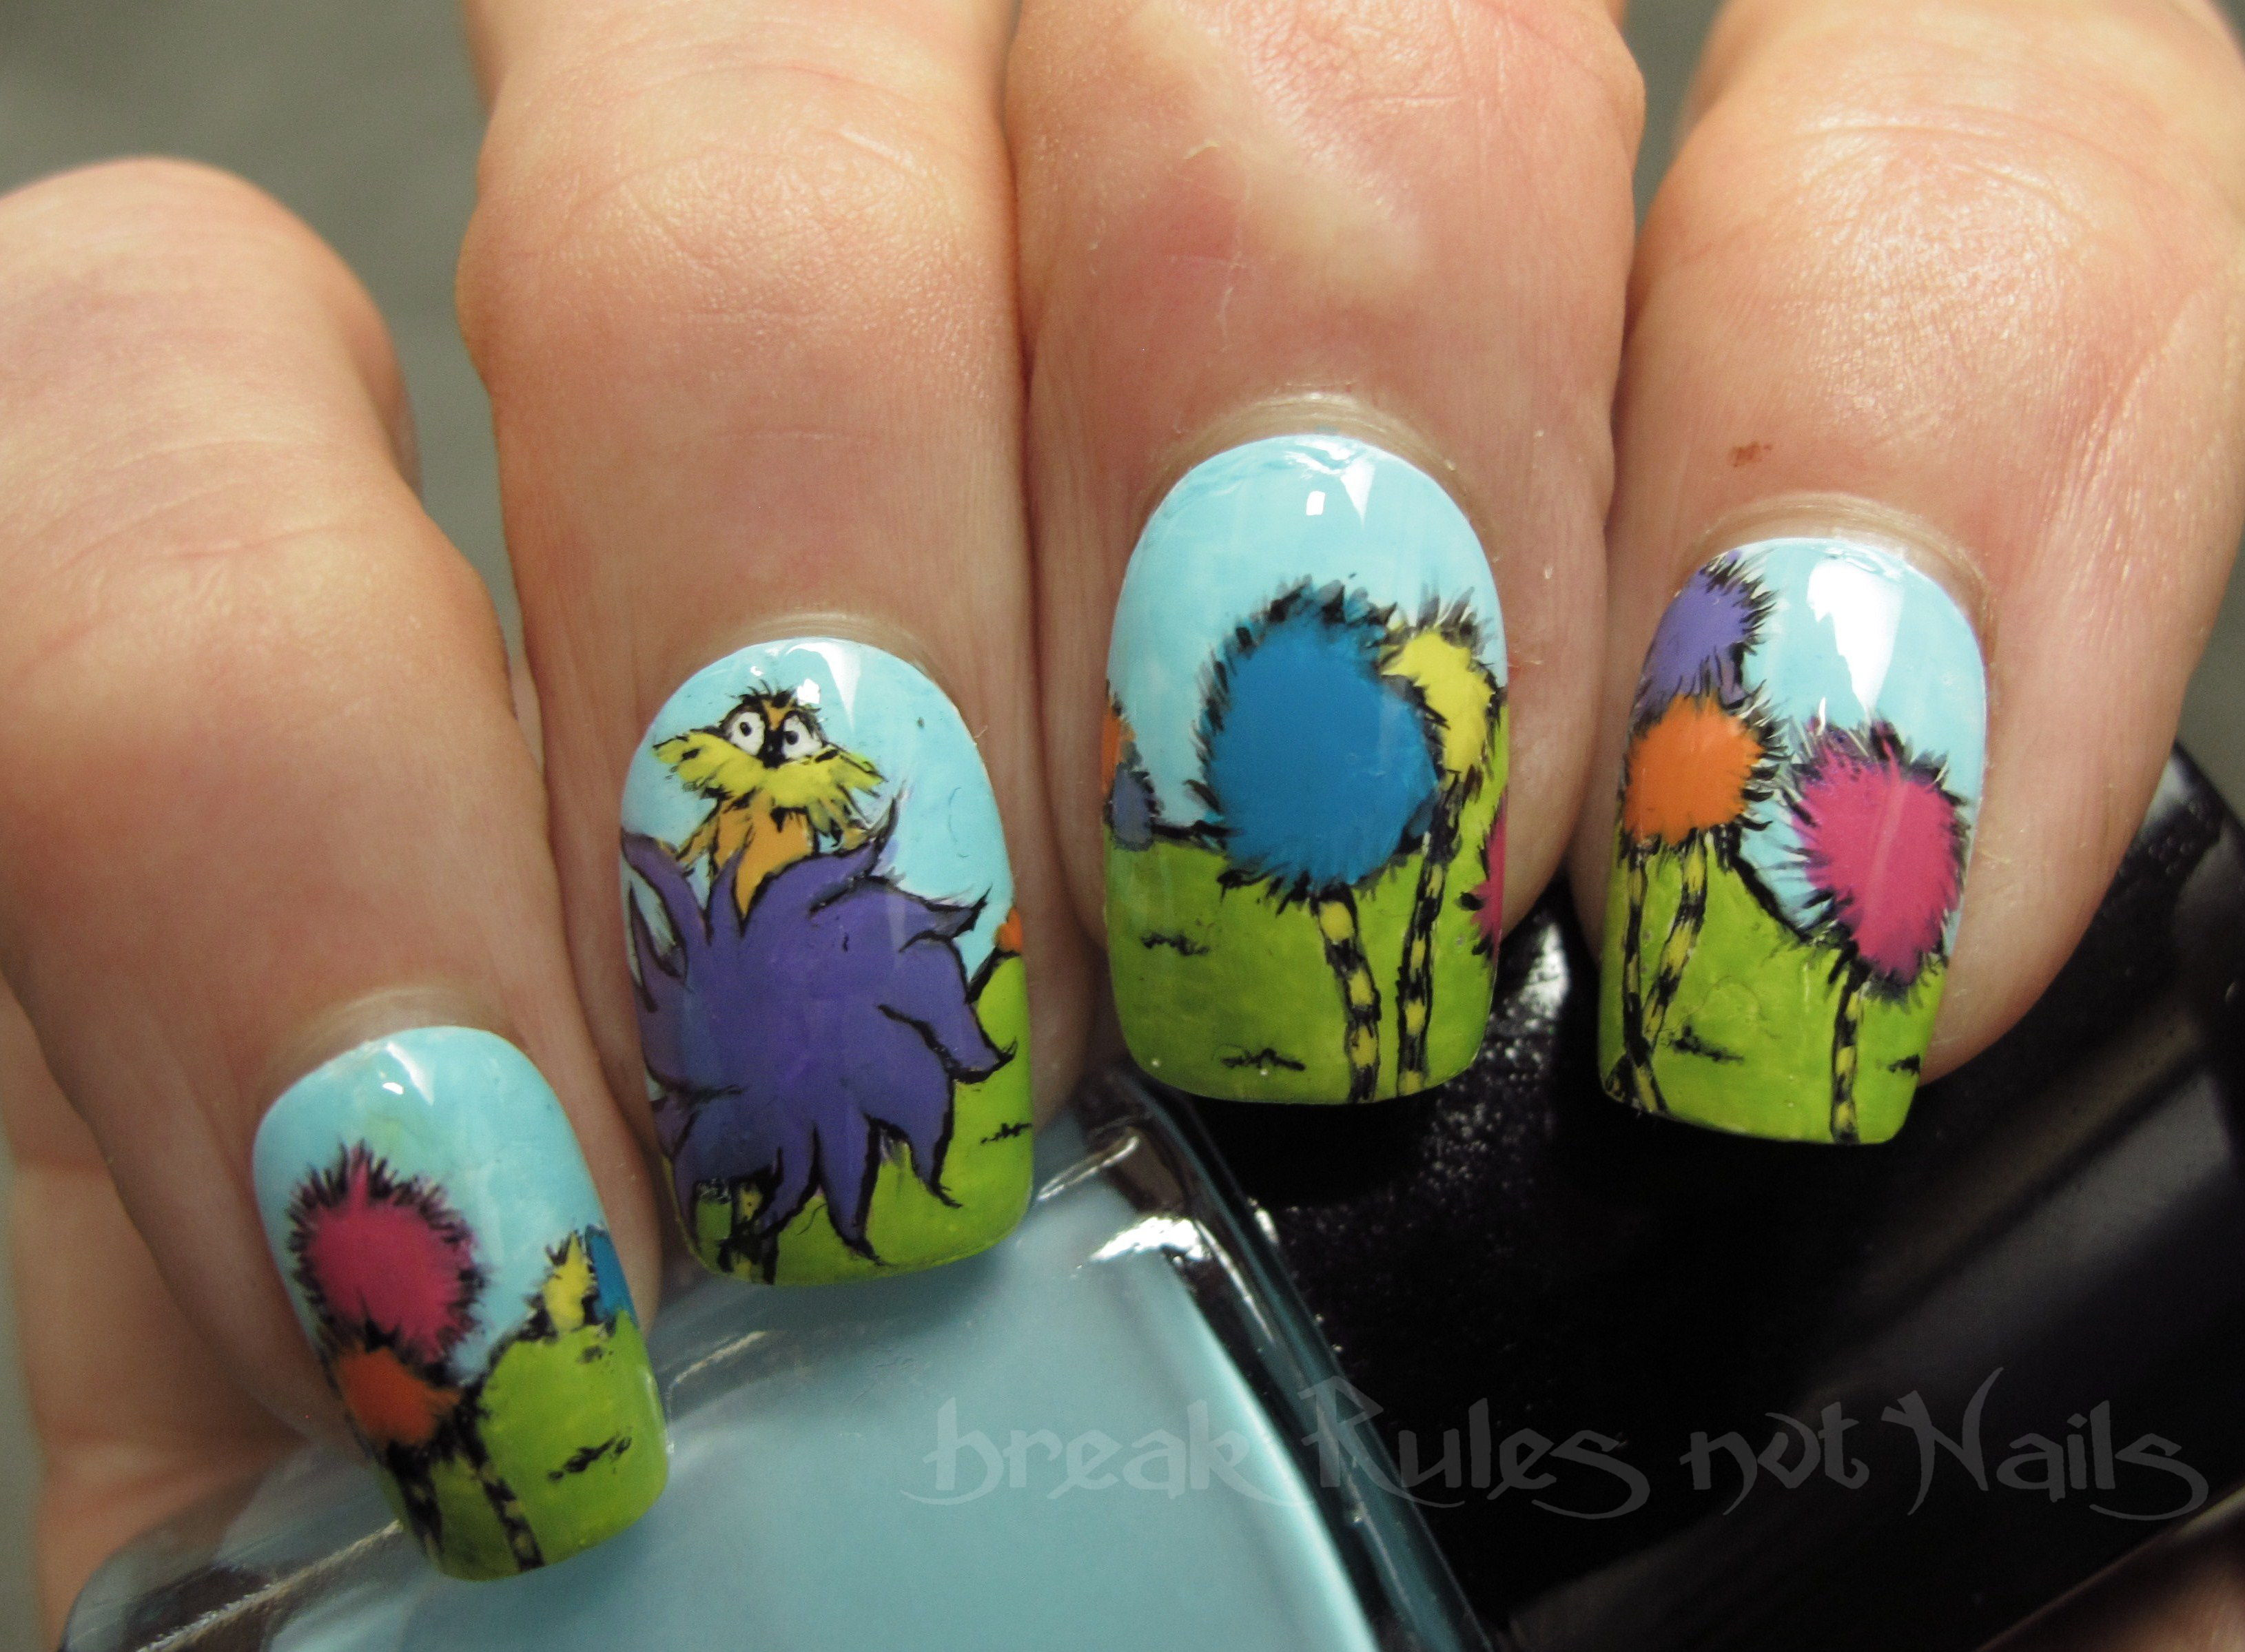 Manicure inspired by the Lorax, probably my favorite Seuss book.